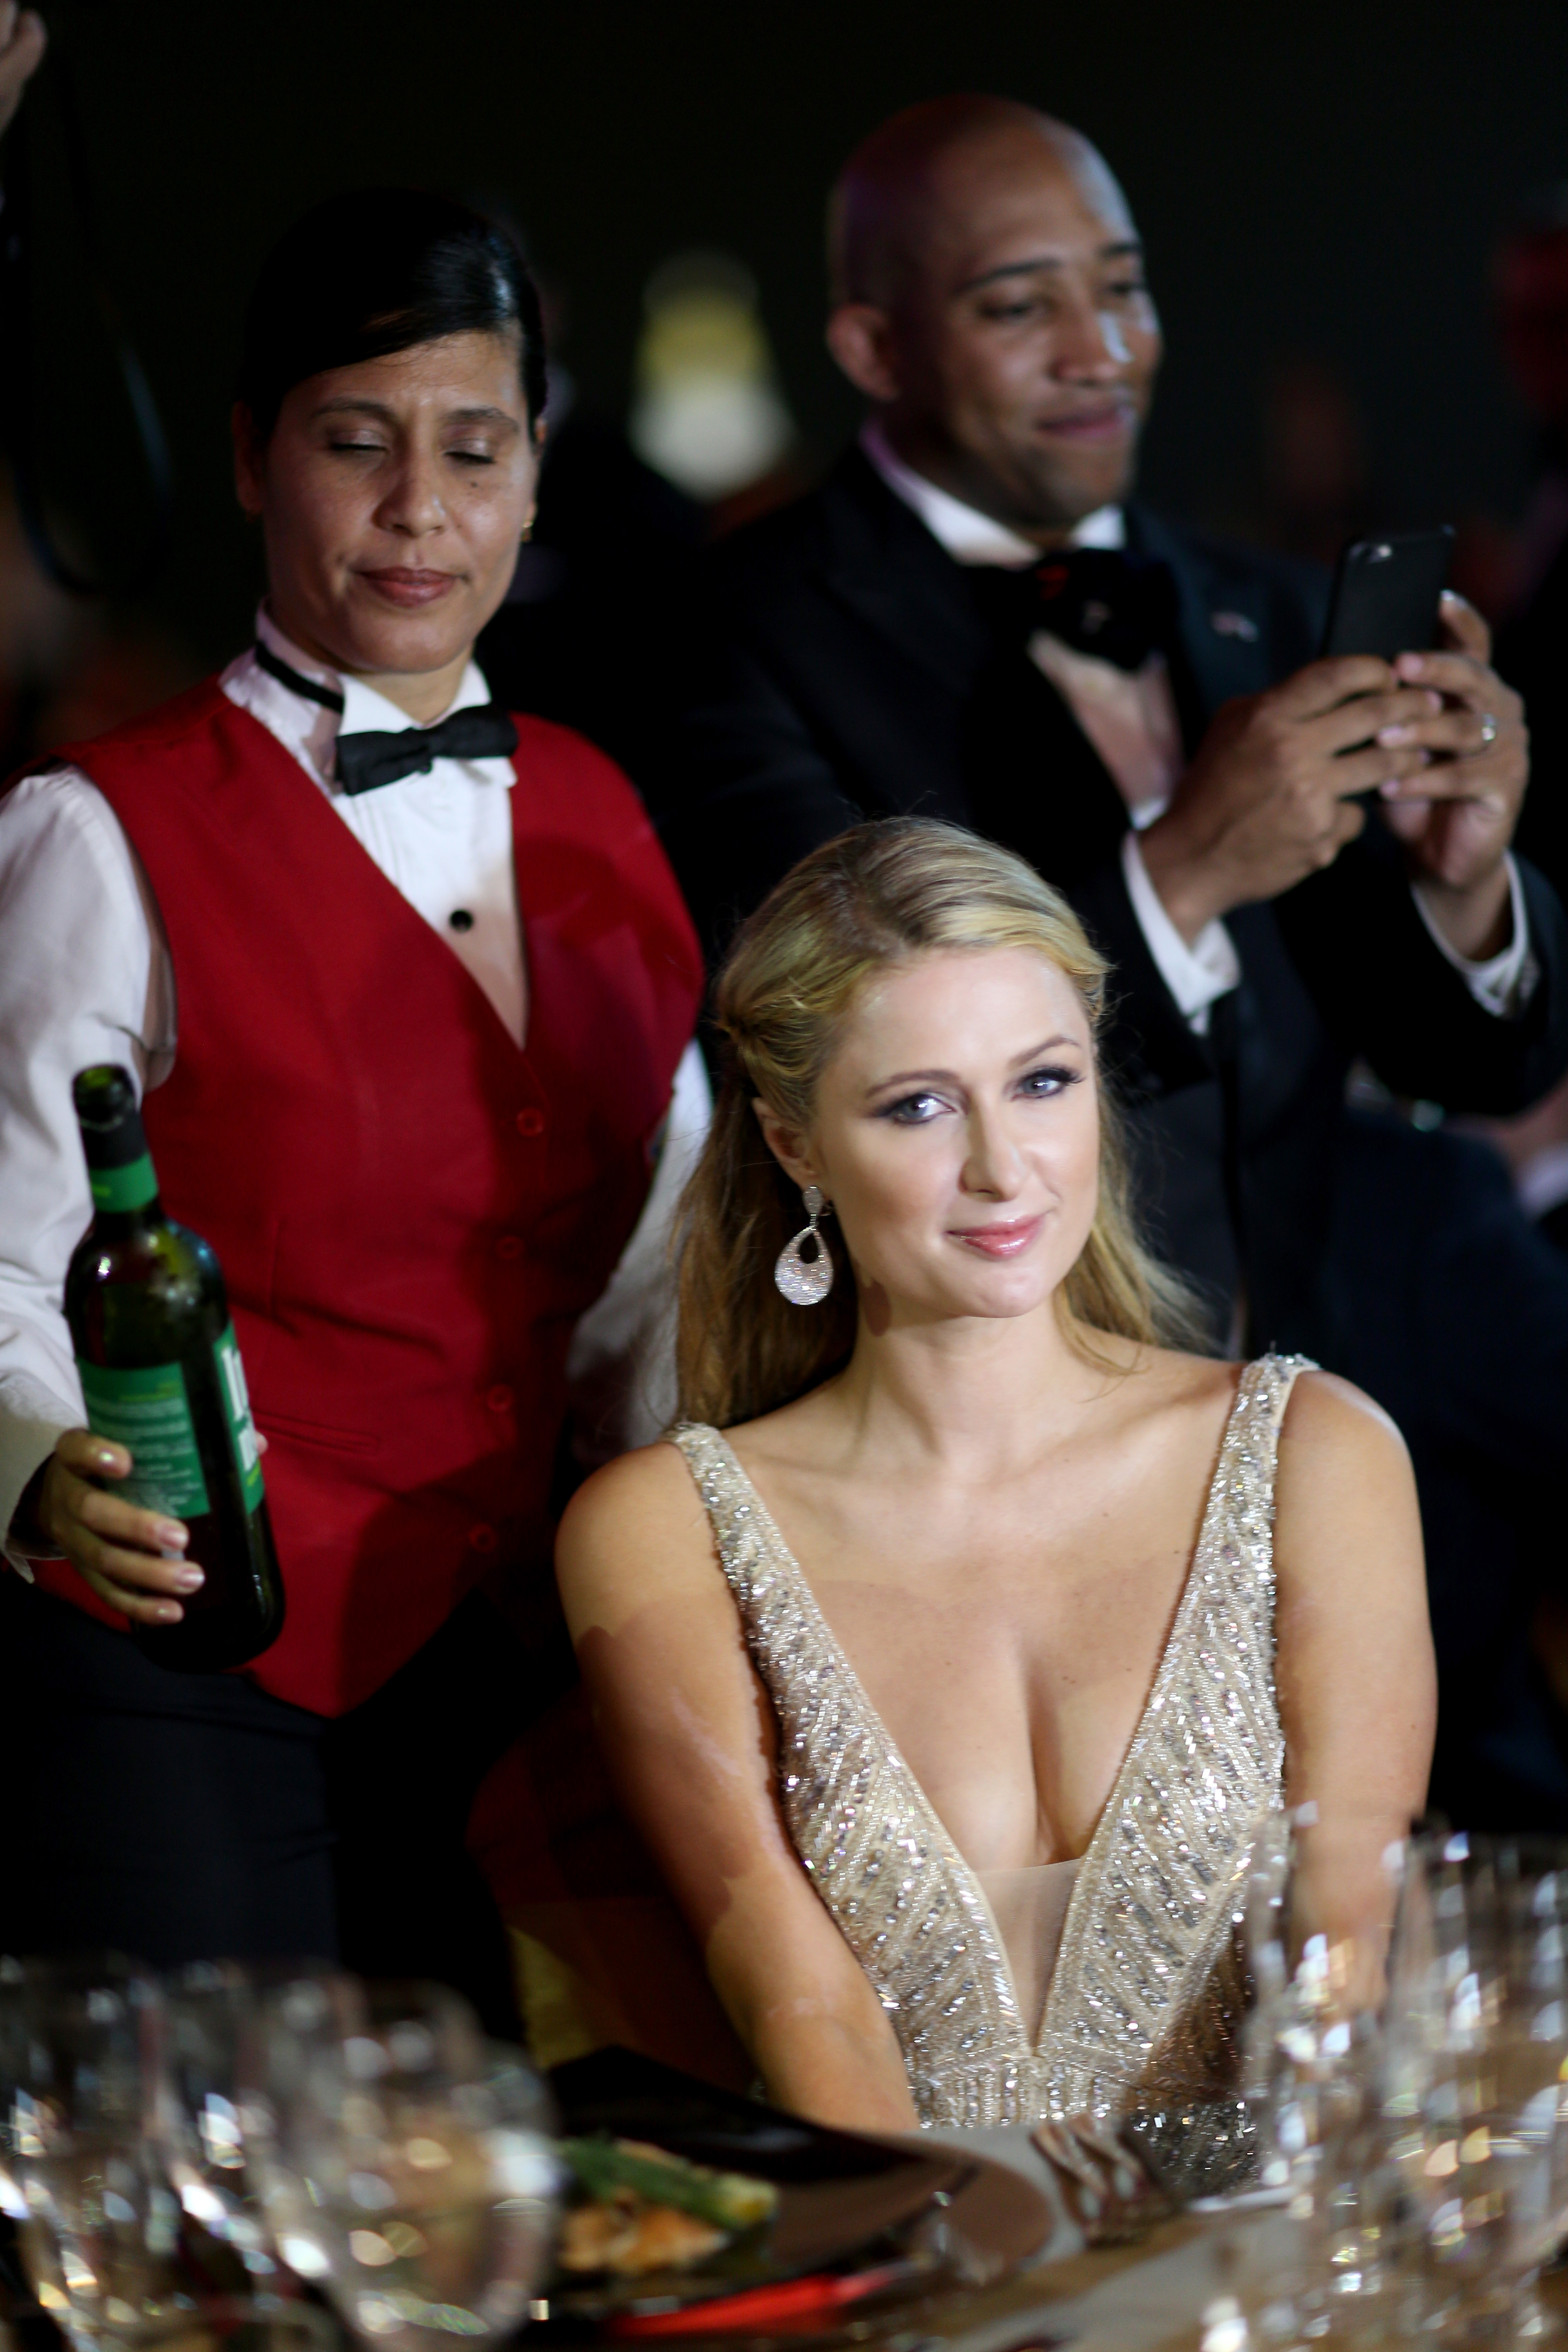 HAVANA, CUBA - FEBRUARY 27: Paris Hilton attends the closing gala night for the week-long International Habano Cigar Festival on February 27, 2015 in Havana, Cuba. The annual cigar festival attracted tourists from around the world to sample the islands world renowned tobacco. (Photo by Joe Raedle/Getty Images)